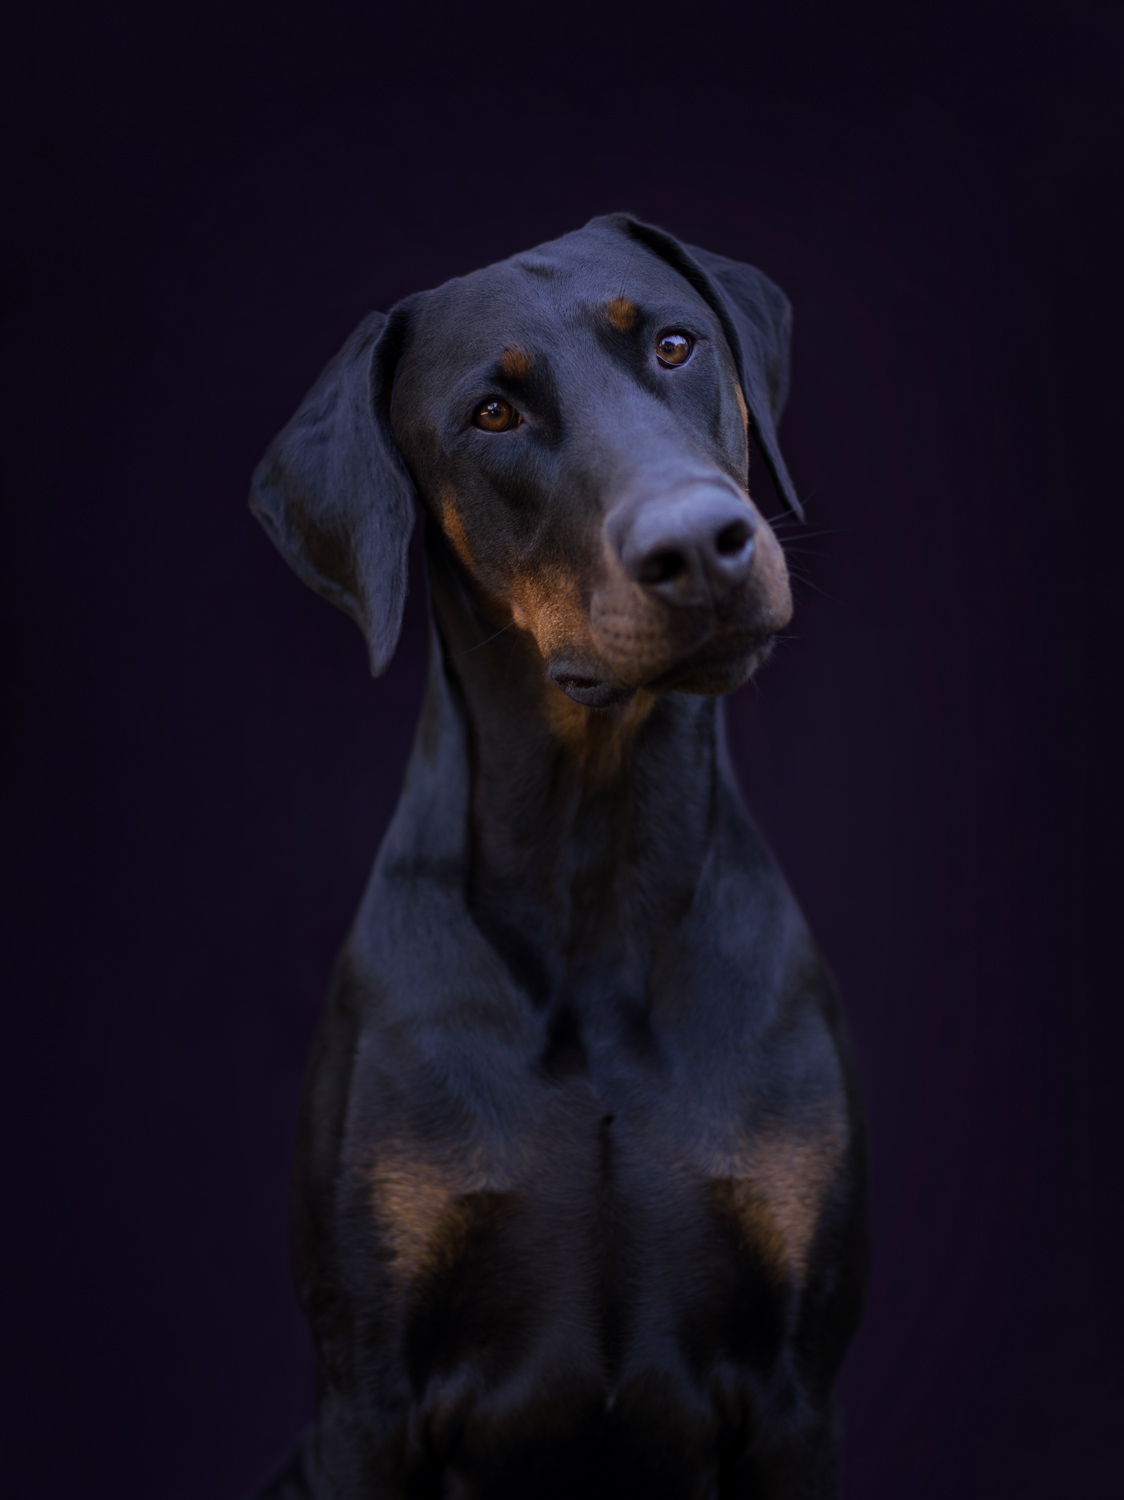 Doberman Dog photographed against Black Background sitting facing camera